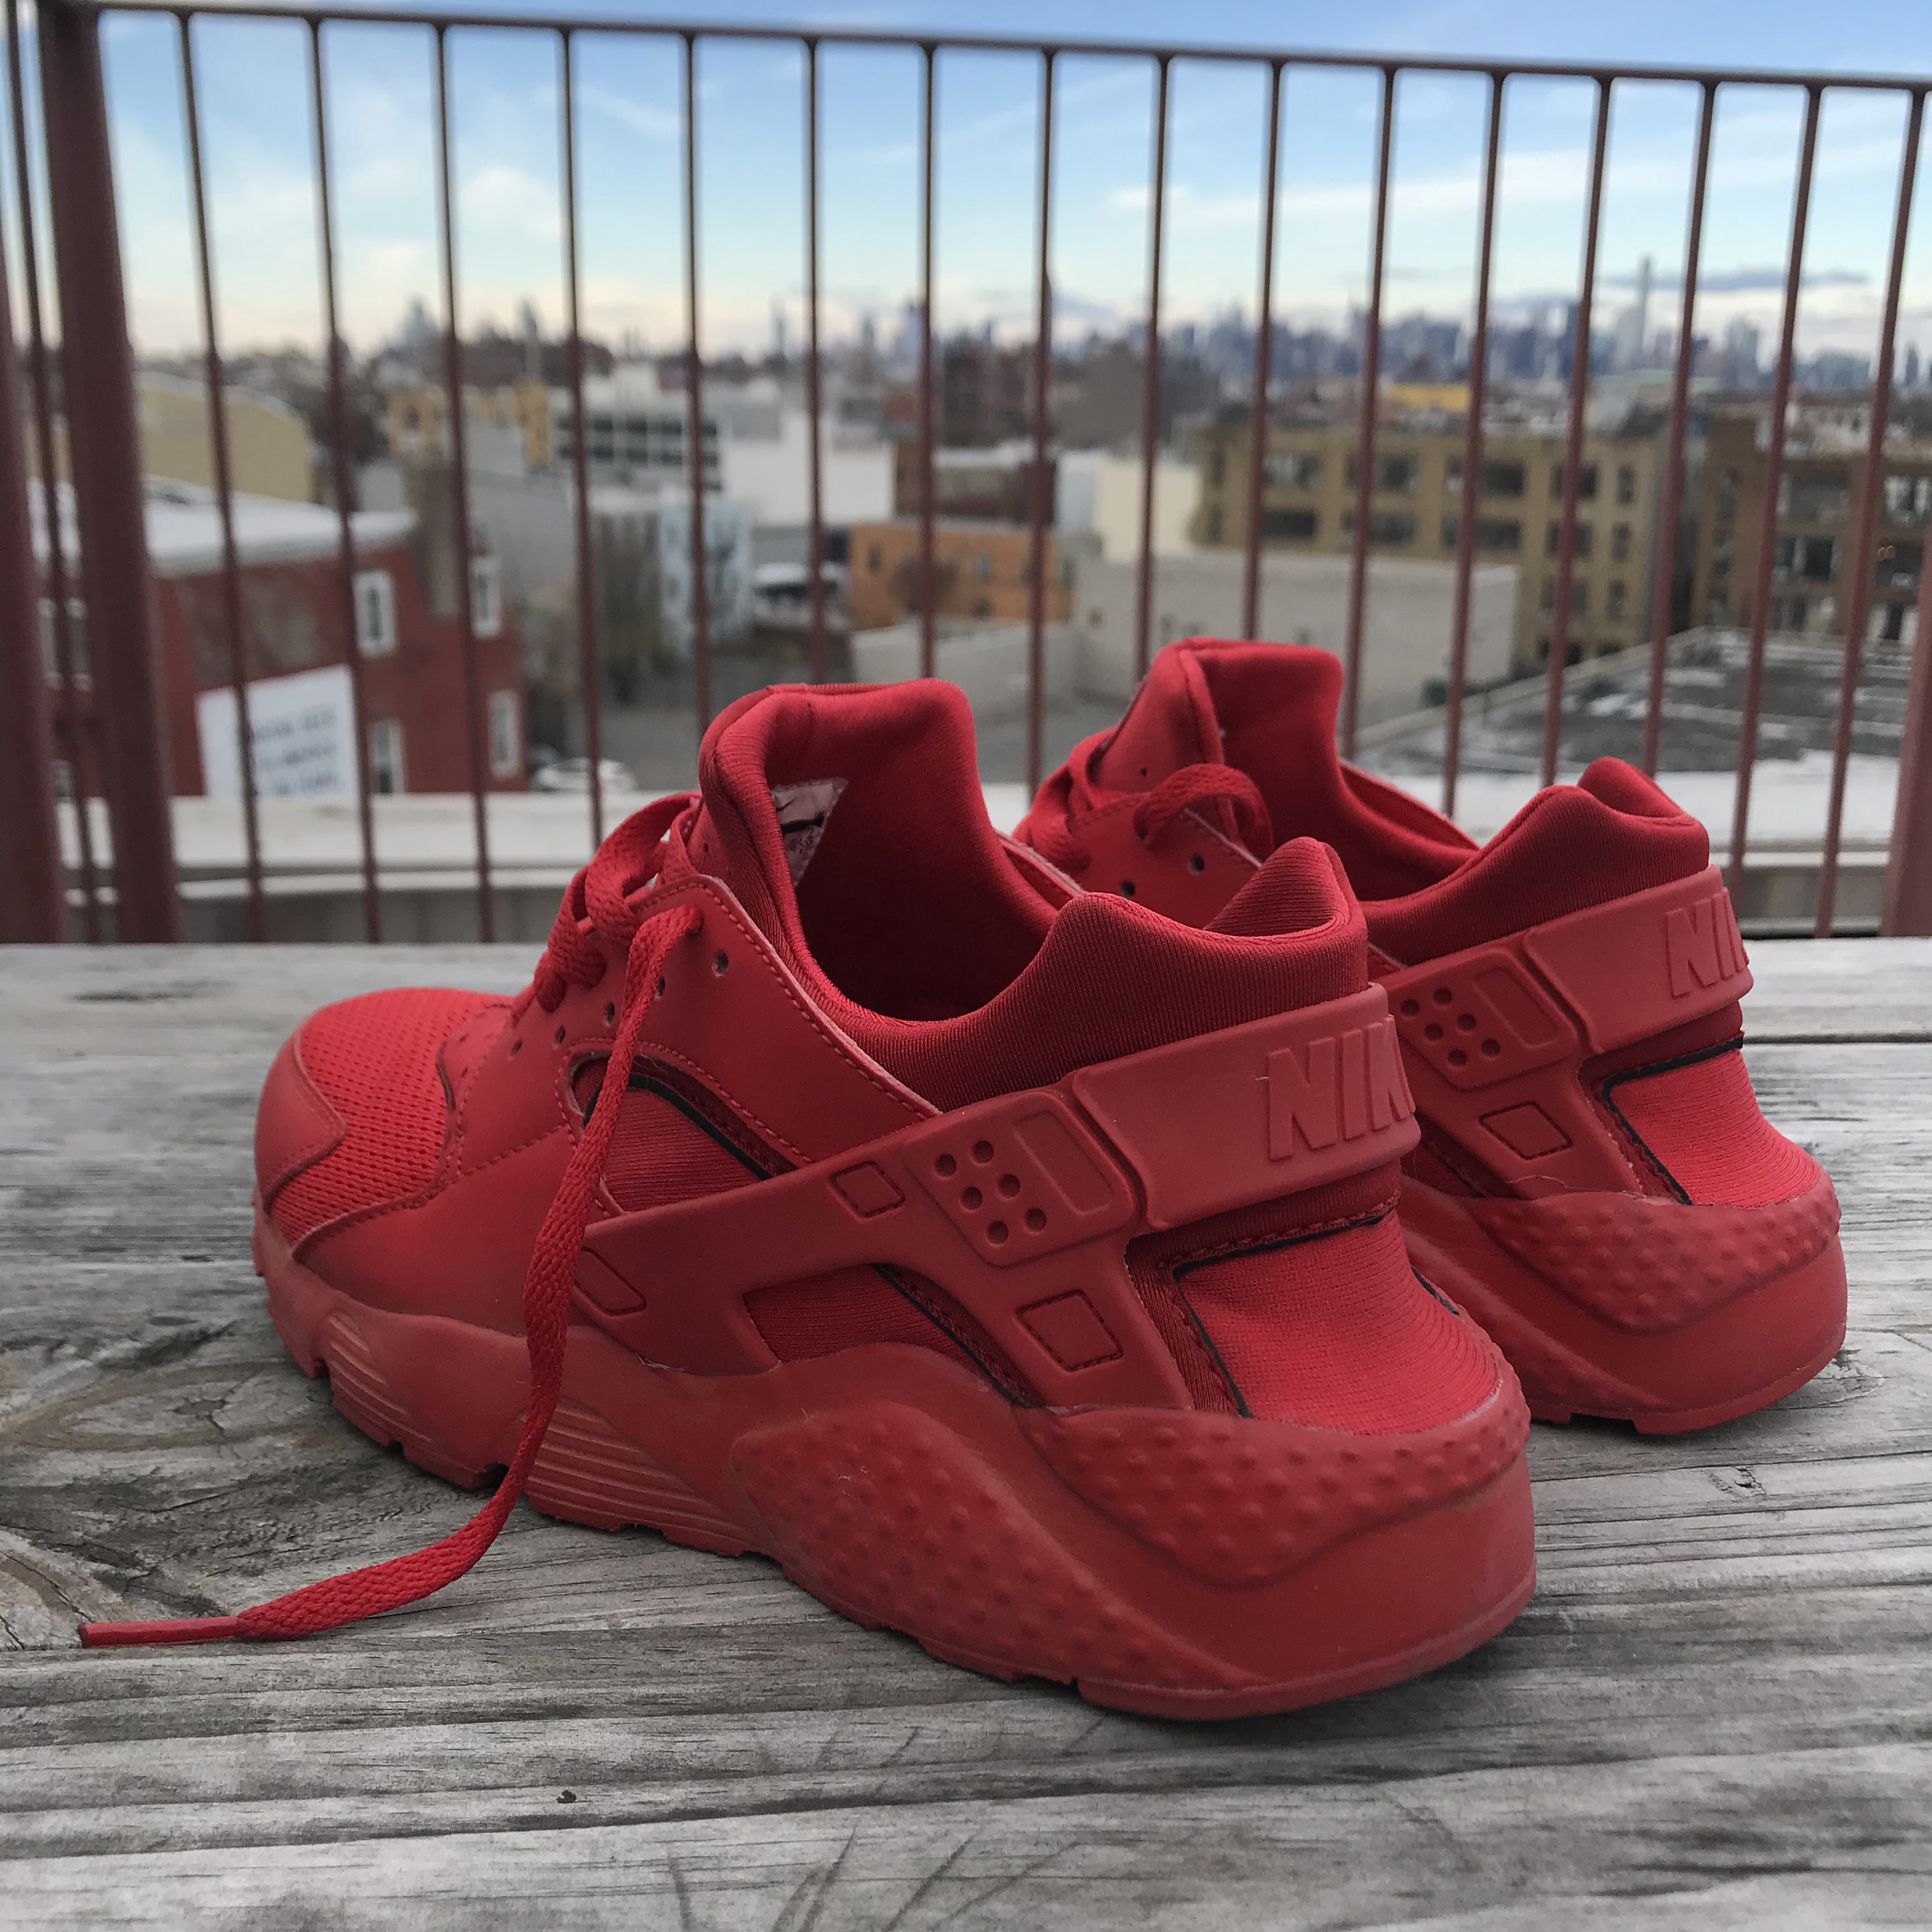 NIKE red tennis shoes. These kicks are